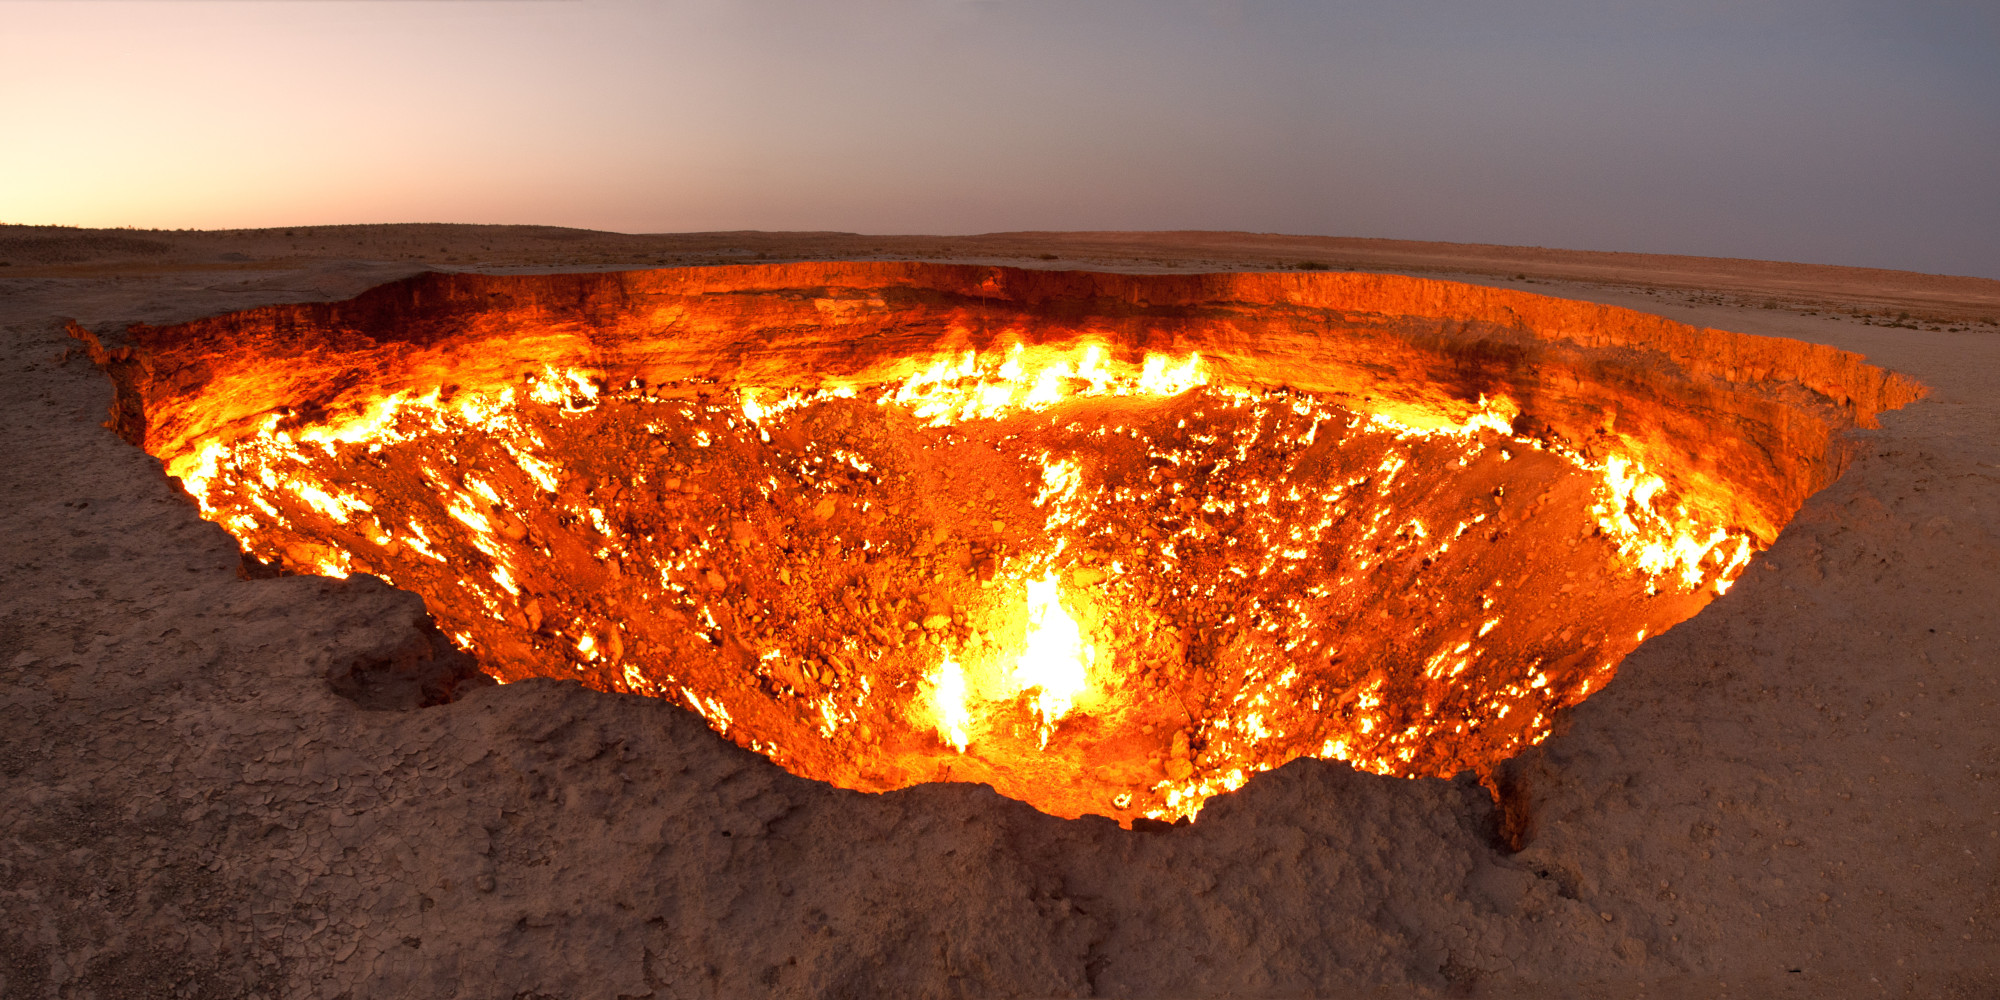 http://www.mixscoop.com/the-door-to-hell-a-fire-thats-burning-for-44-years/